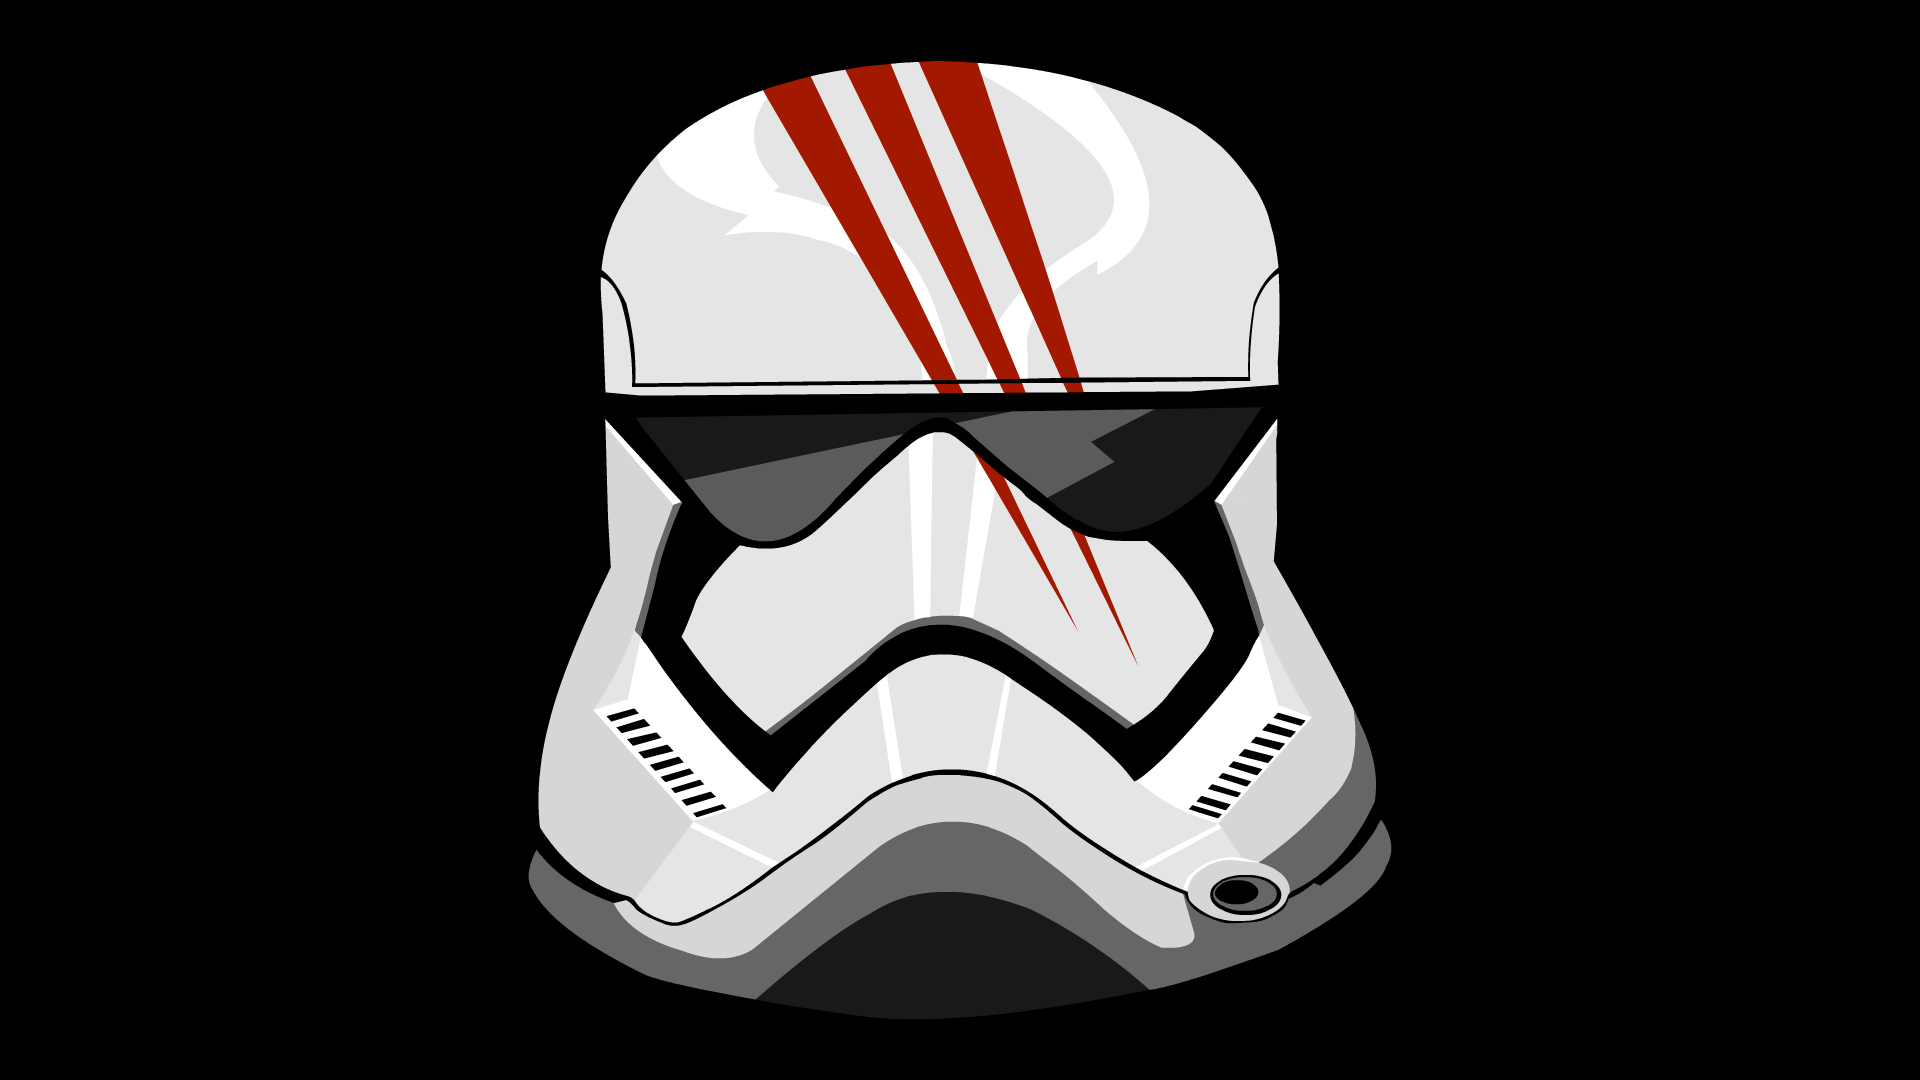 Star Wars Stormtrooper Wallpapers Top Free Star Wars